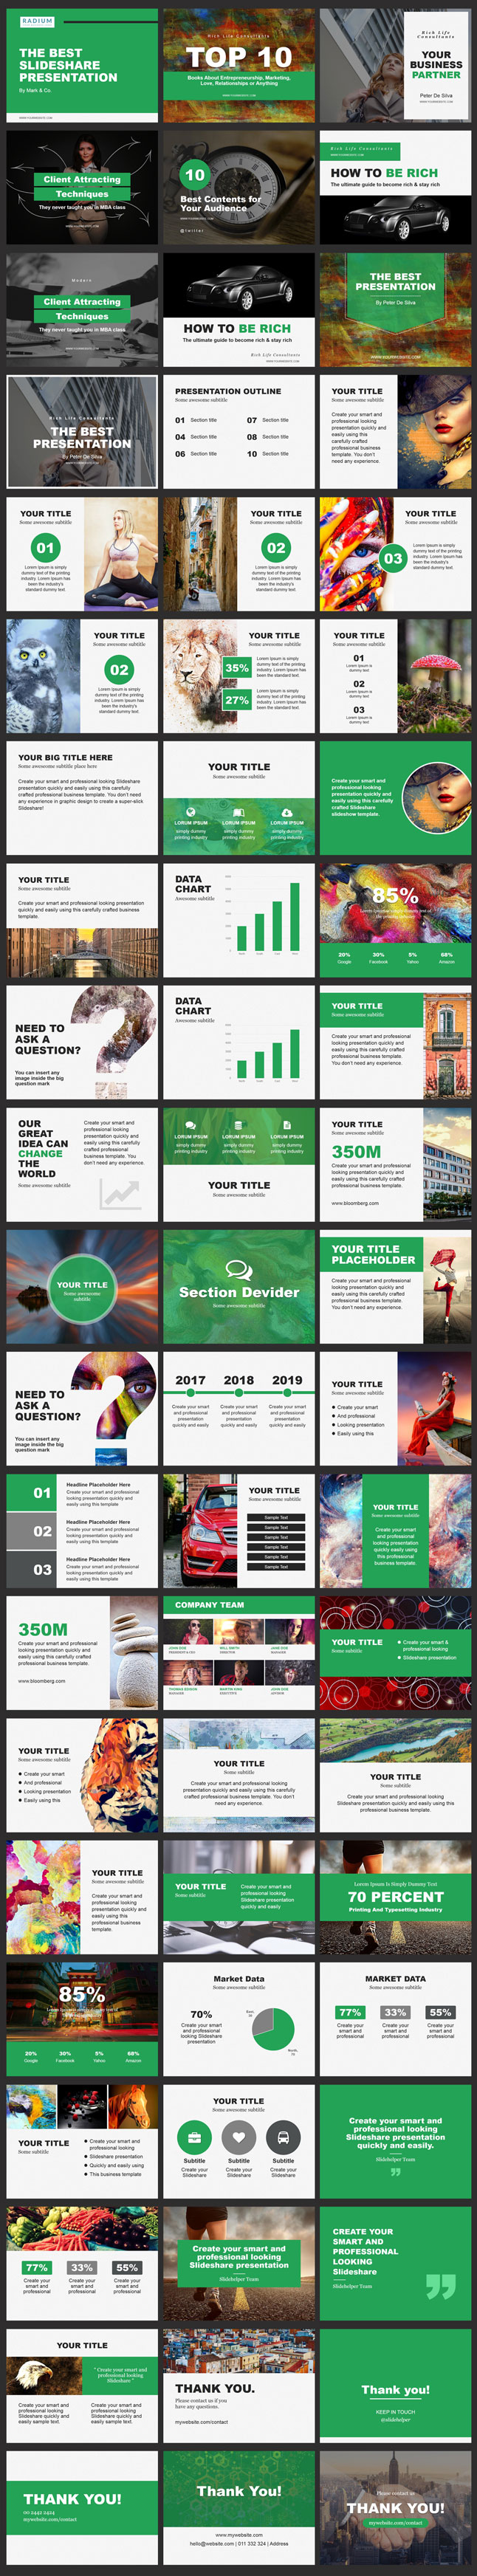 Slideshare ppt green color template